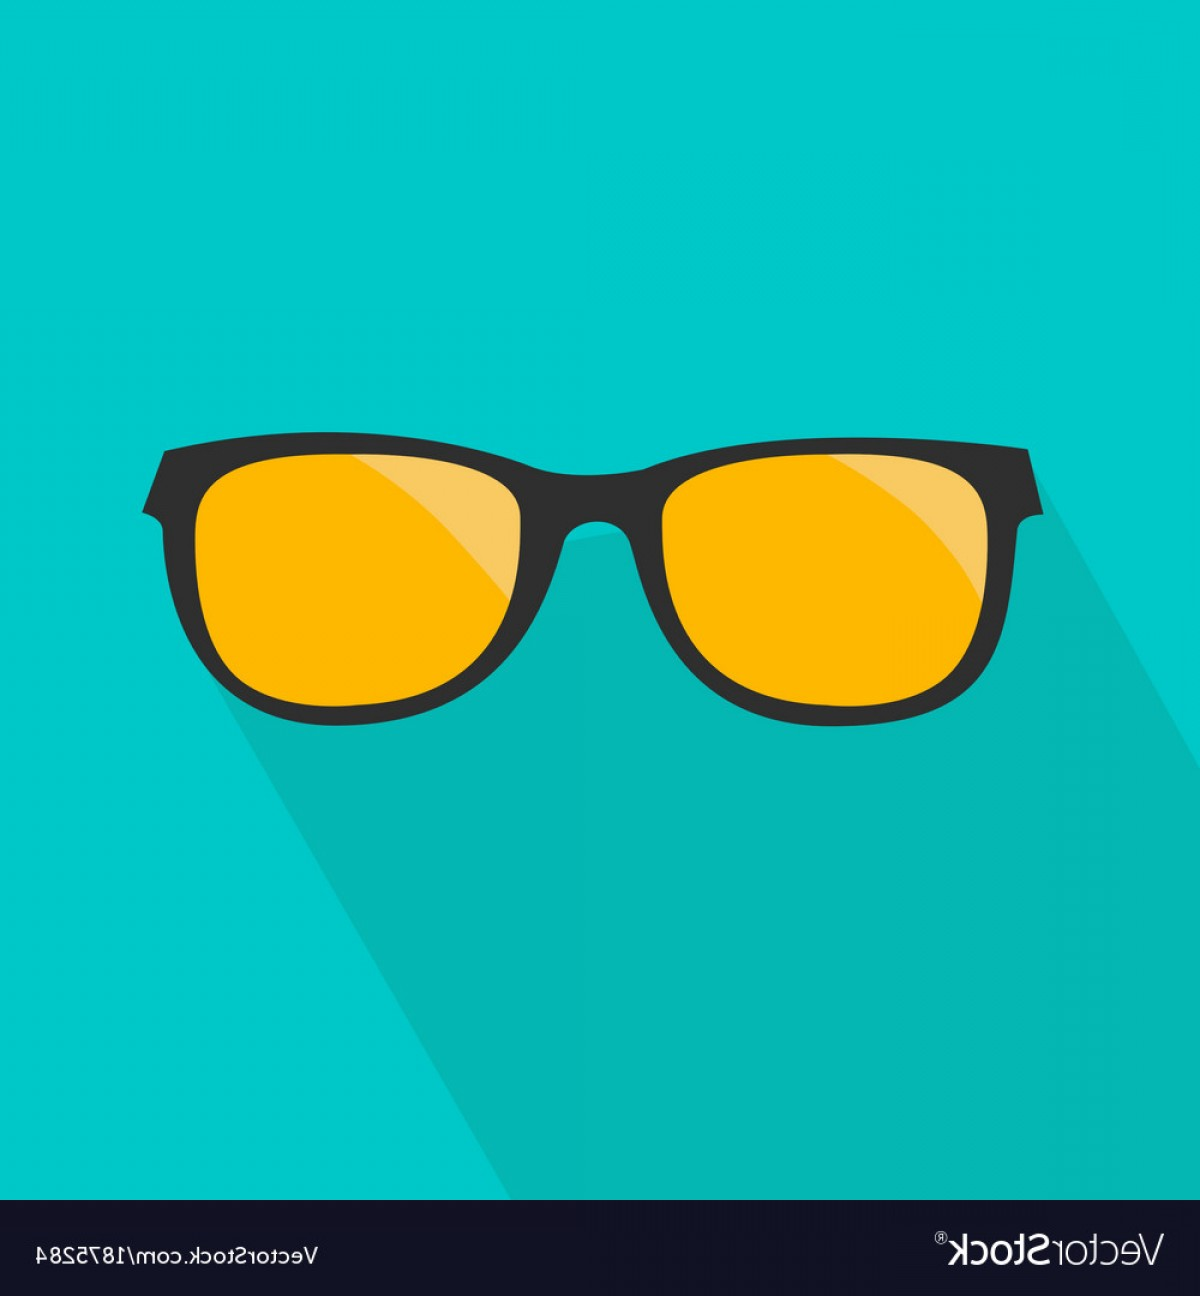 Glasses Vector Flat: Glasses With Yellow Lens Long Shadow Flat Design Vector